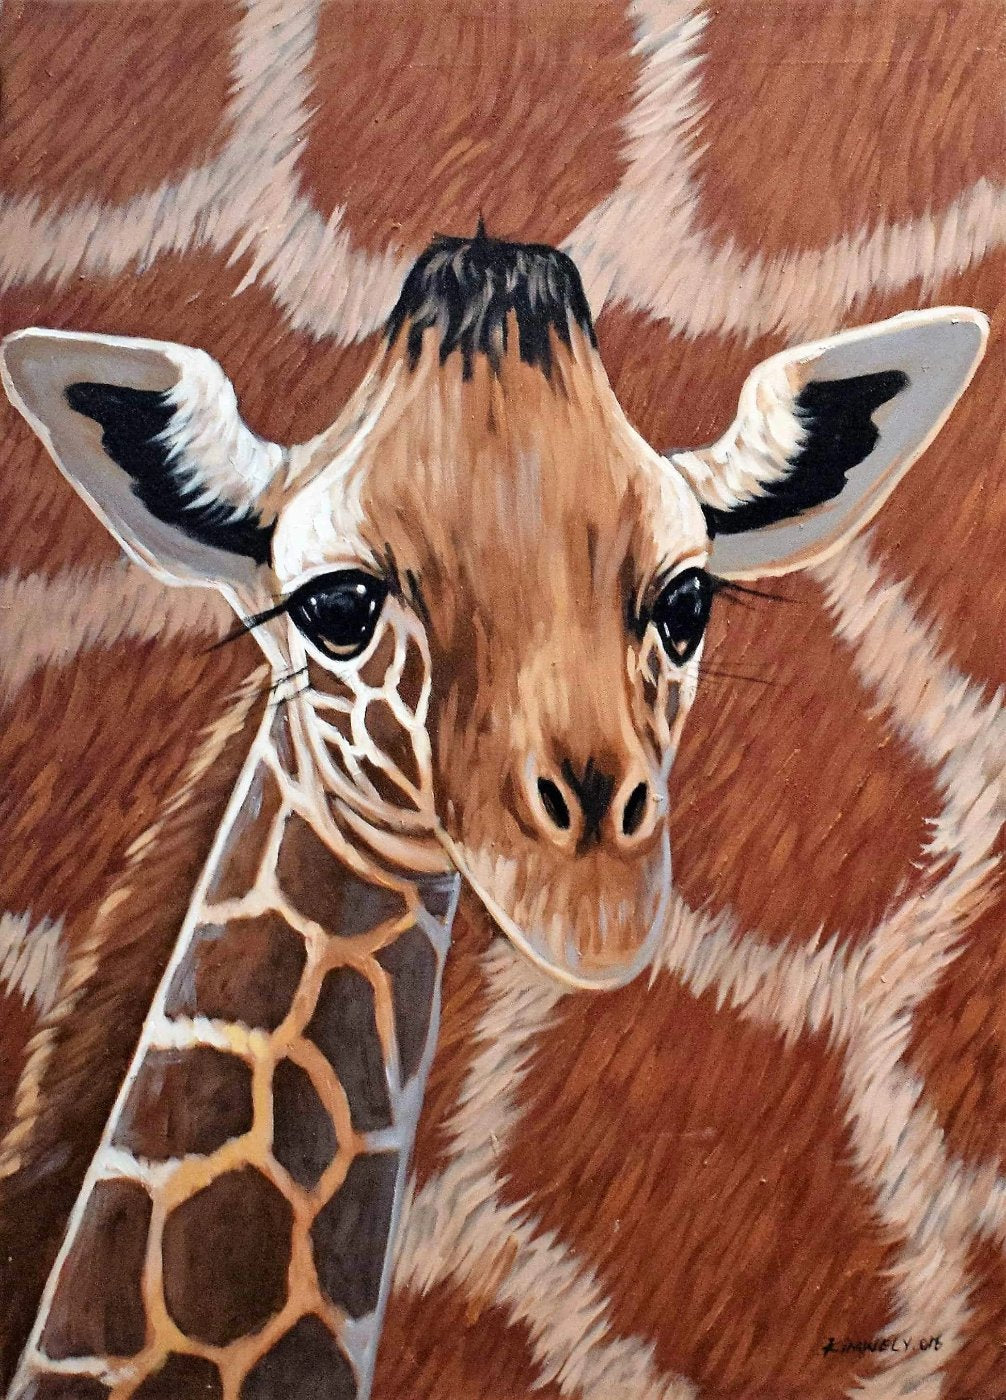 African painting of a giraffe for sale